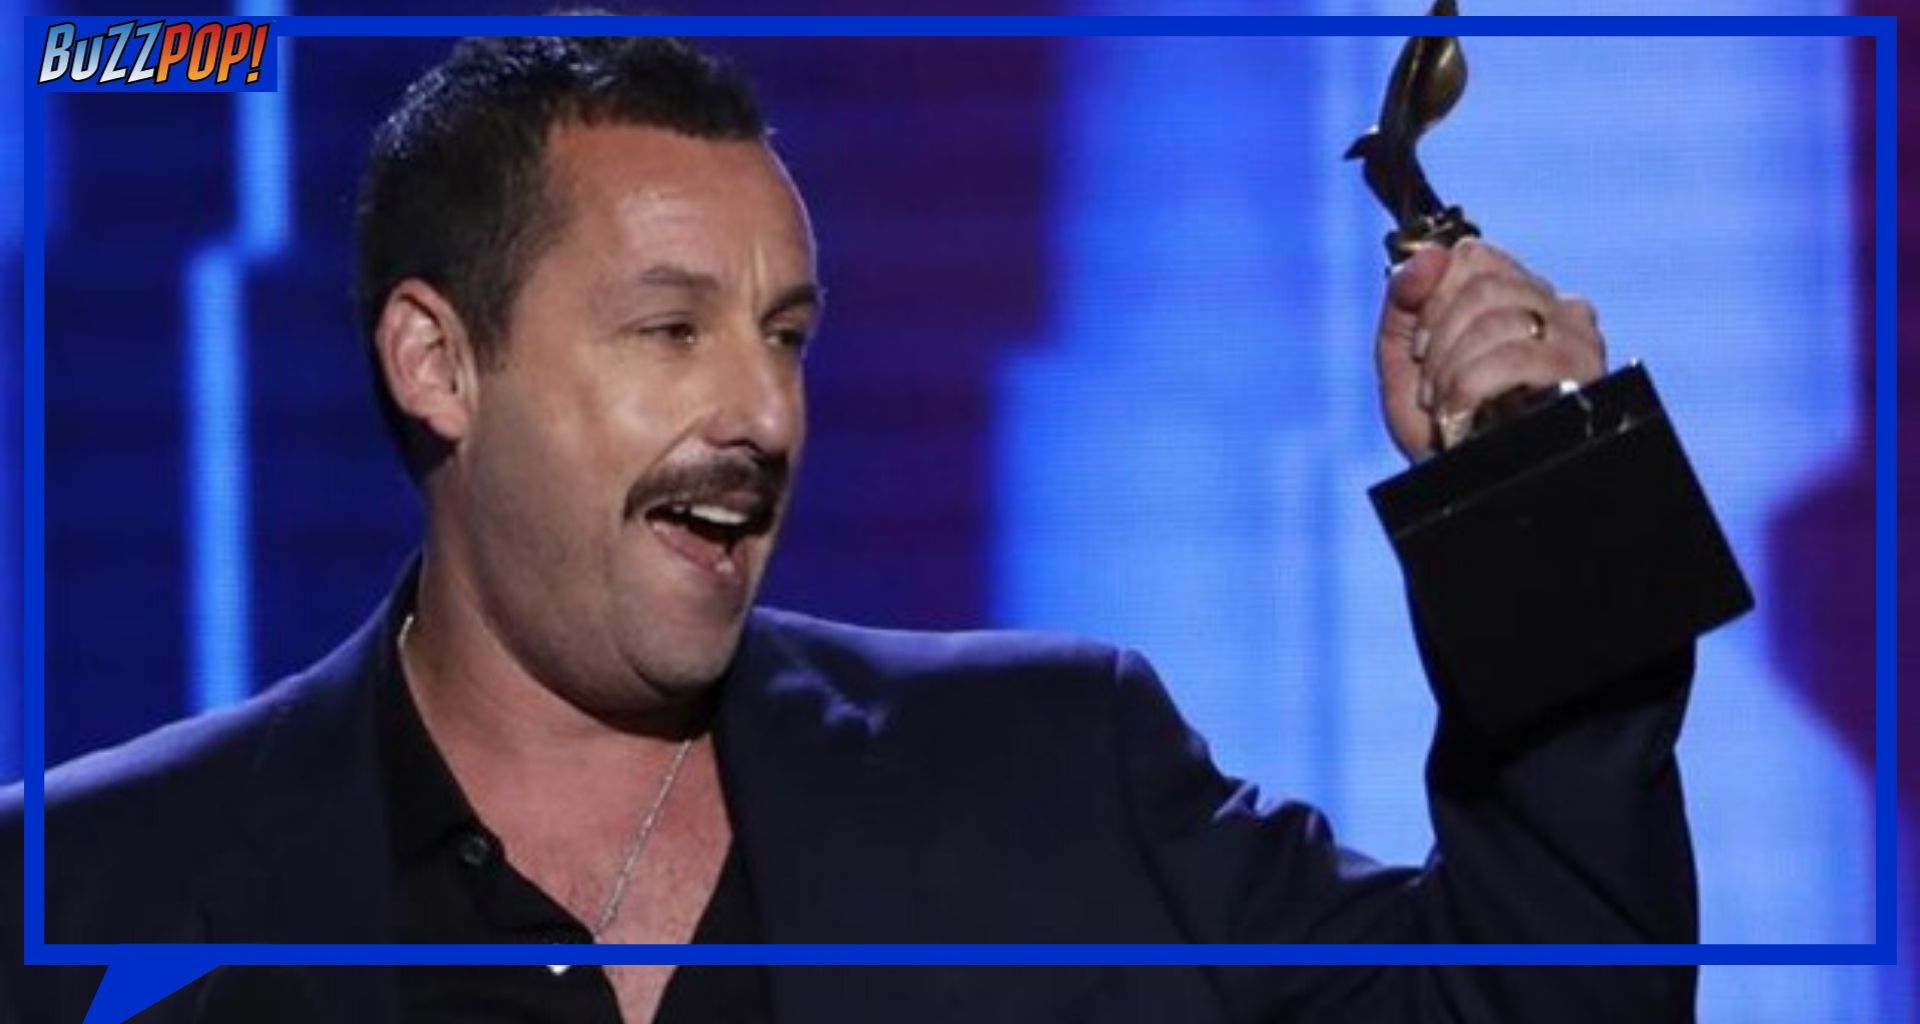 Adam Sandler Spirit Awards 2020